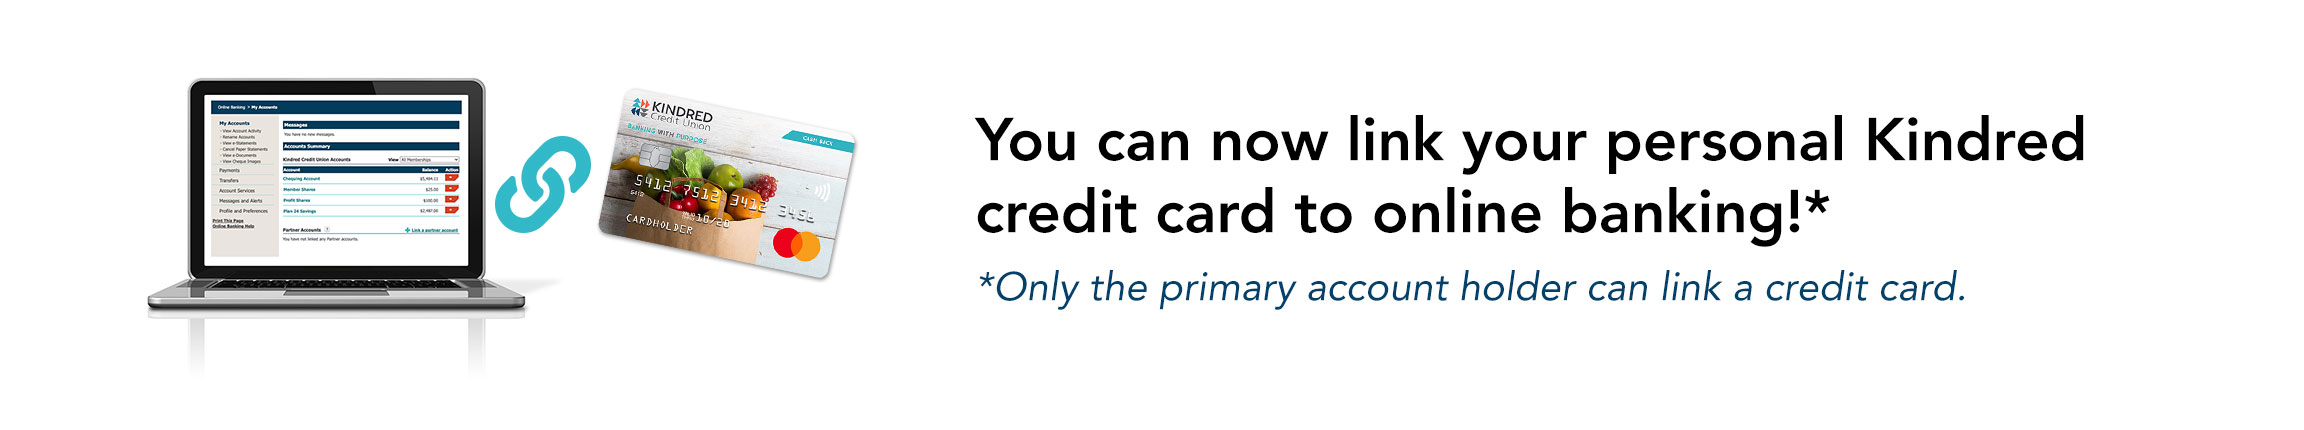 You can now link your personal Kindred credit card to online banking! Only the primary account holder can link a credit card.